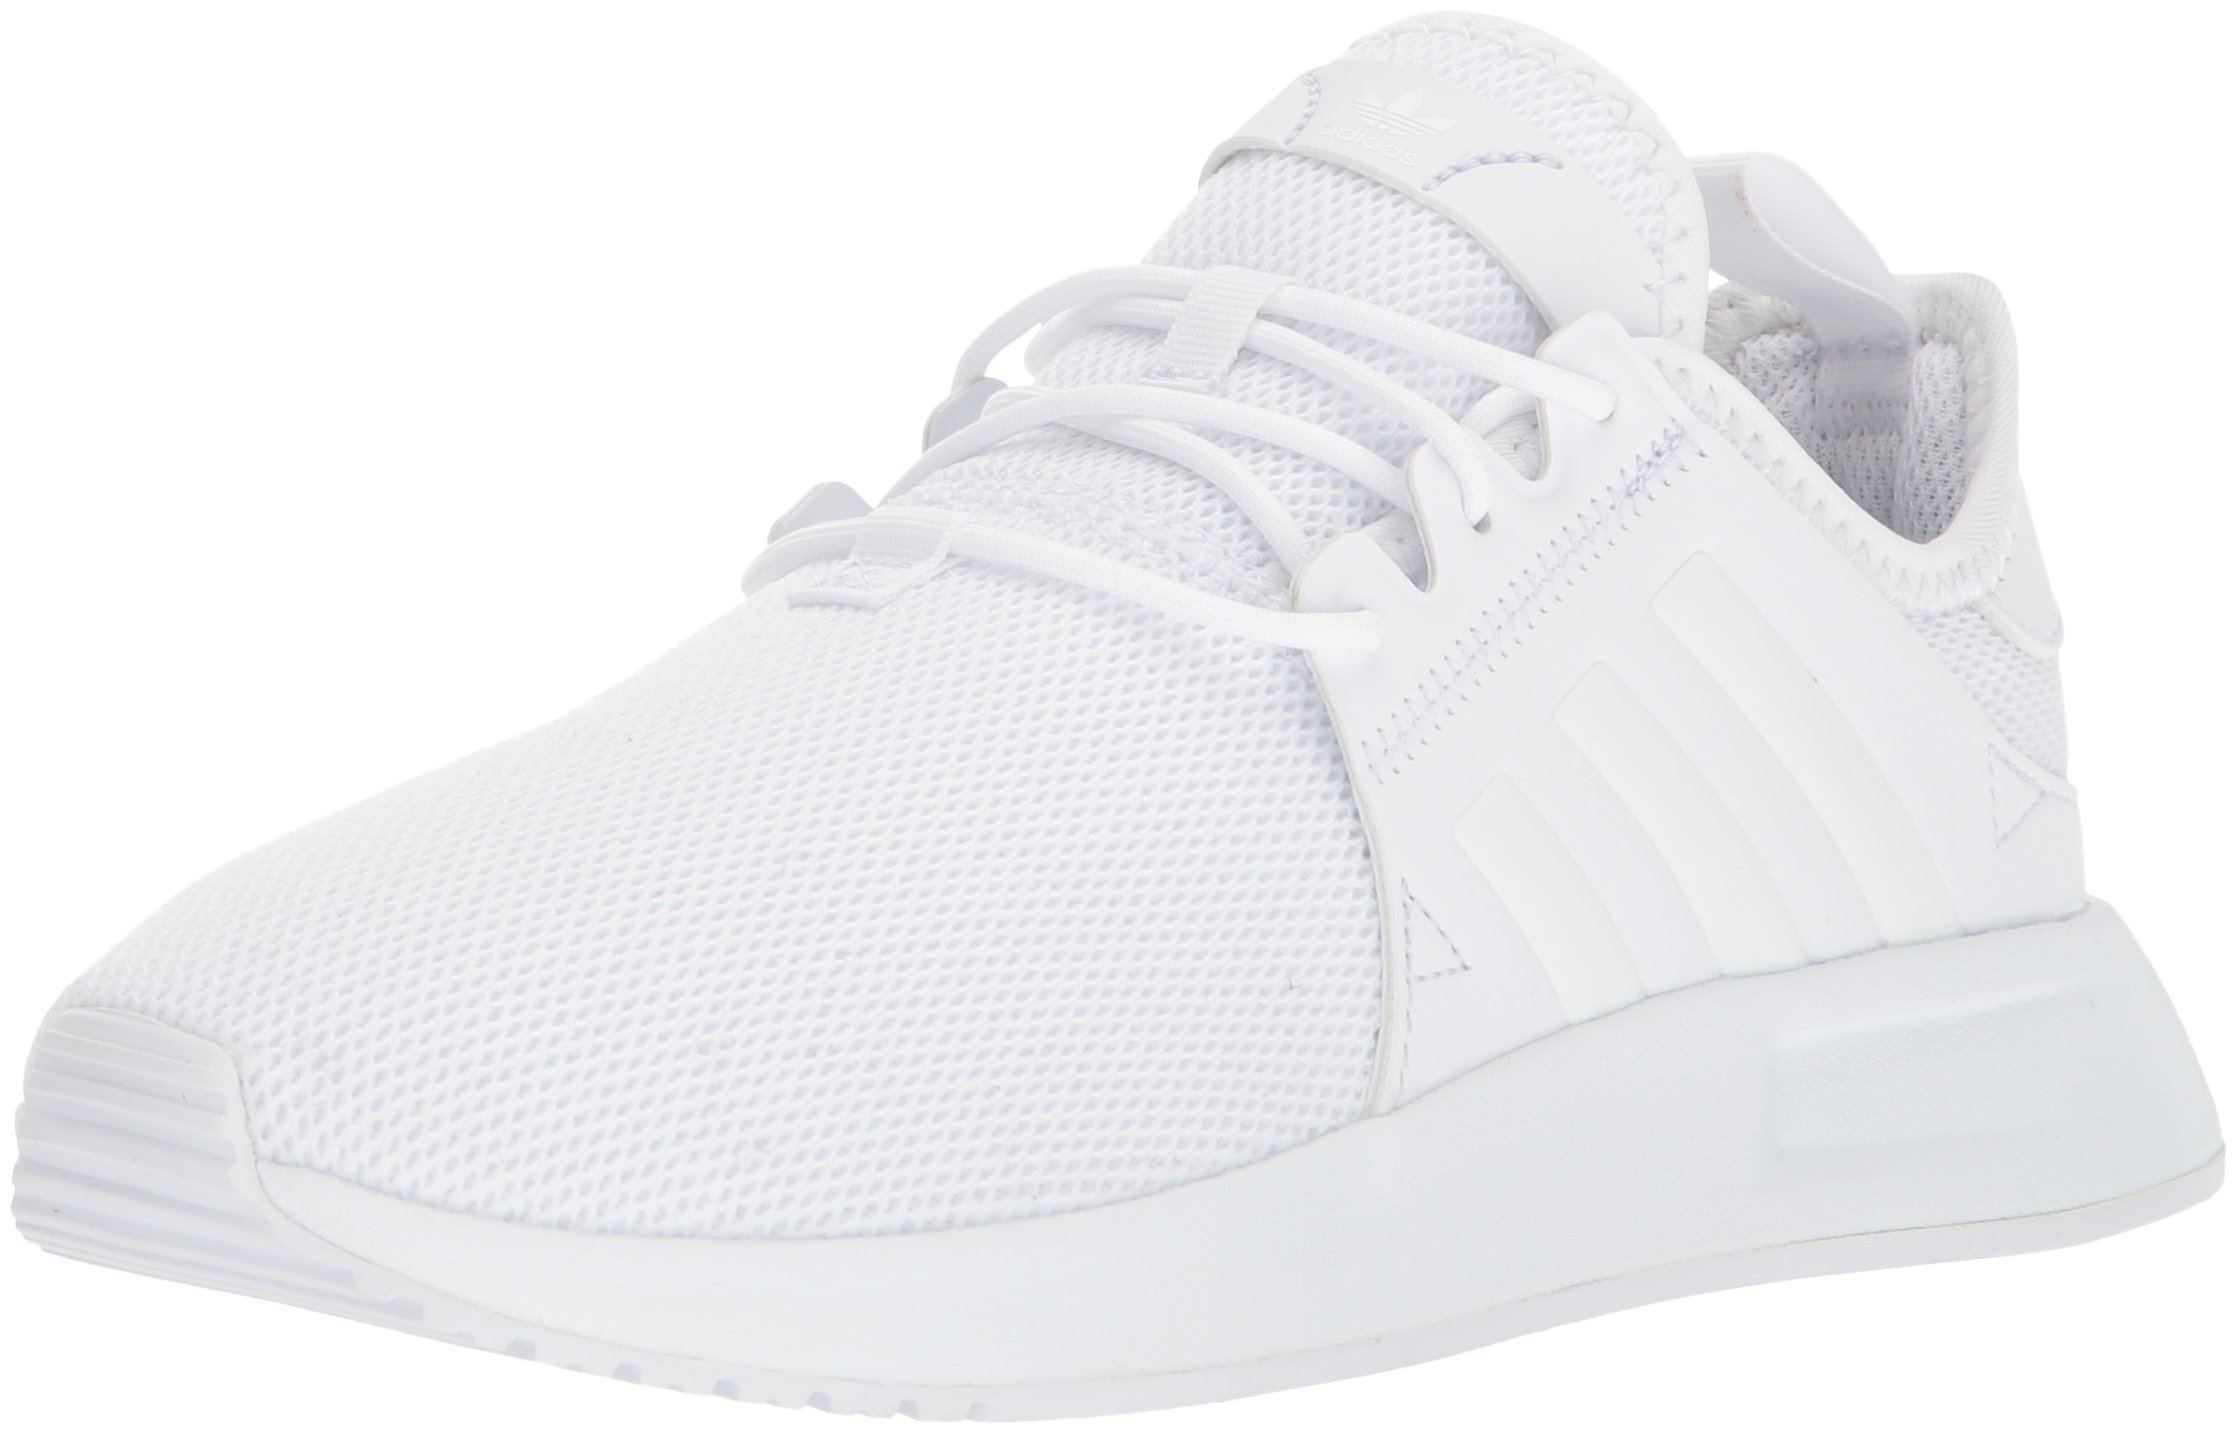 adidas Originals Boys' X_PLR C, White/White/White, 10.5 M US Little Kid by adidas Originals (Image #1)